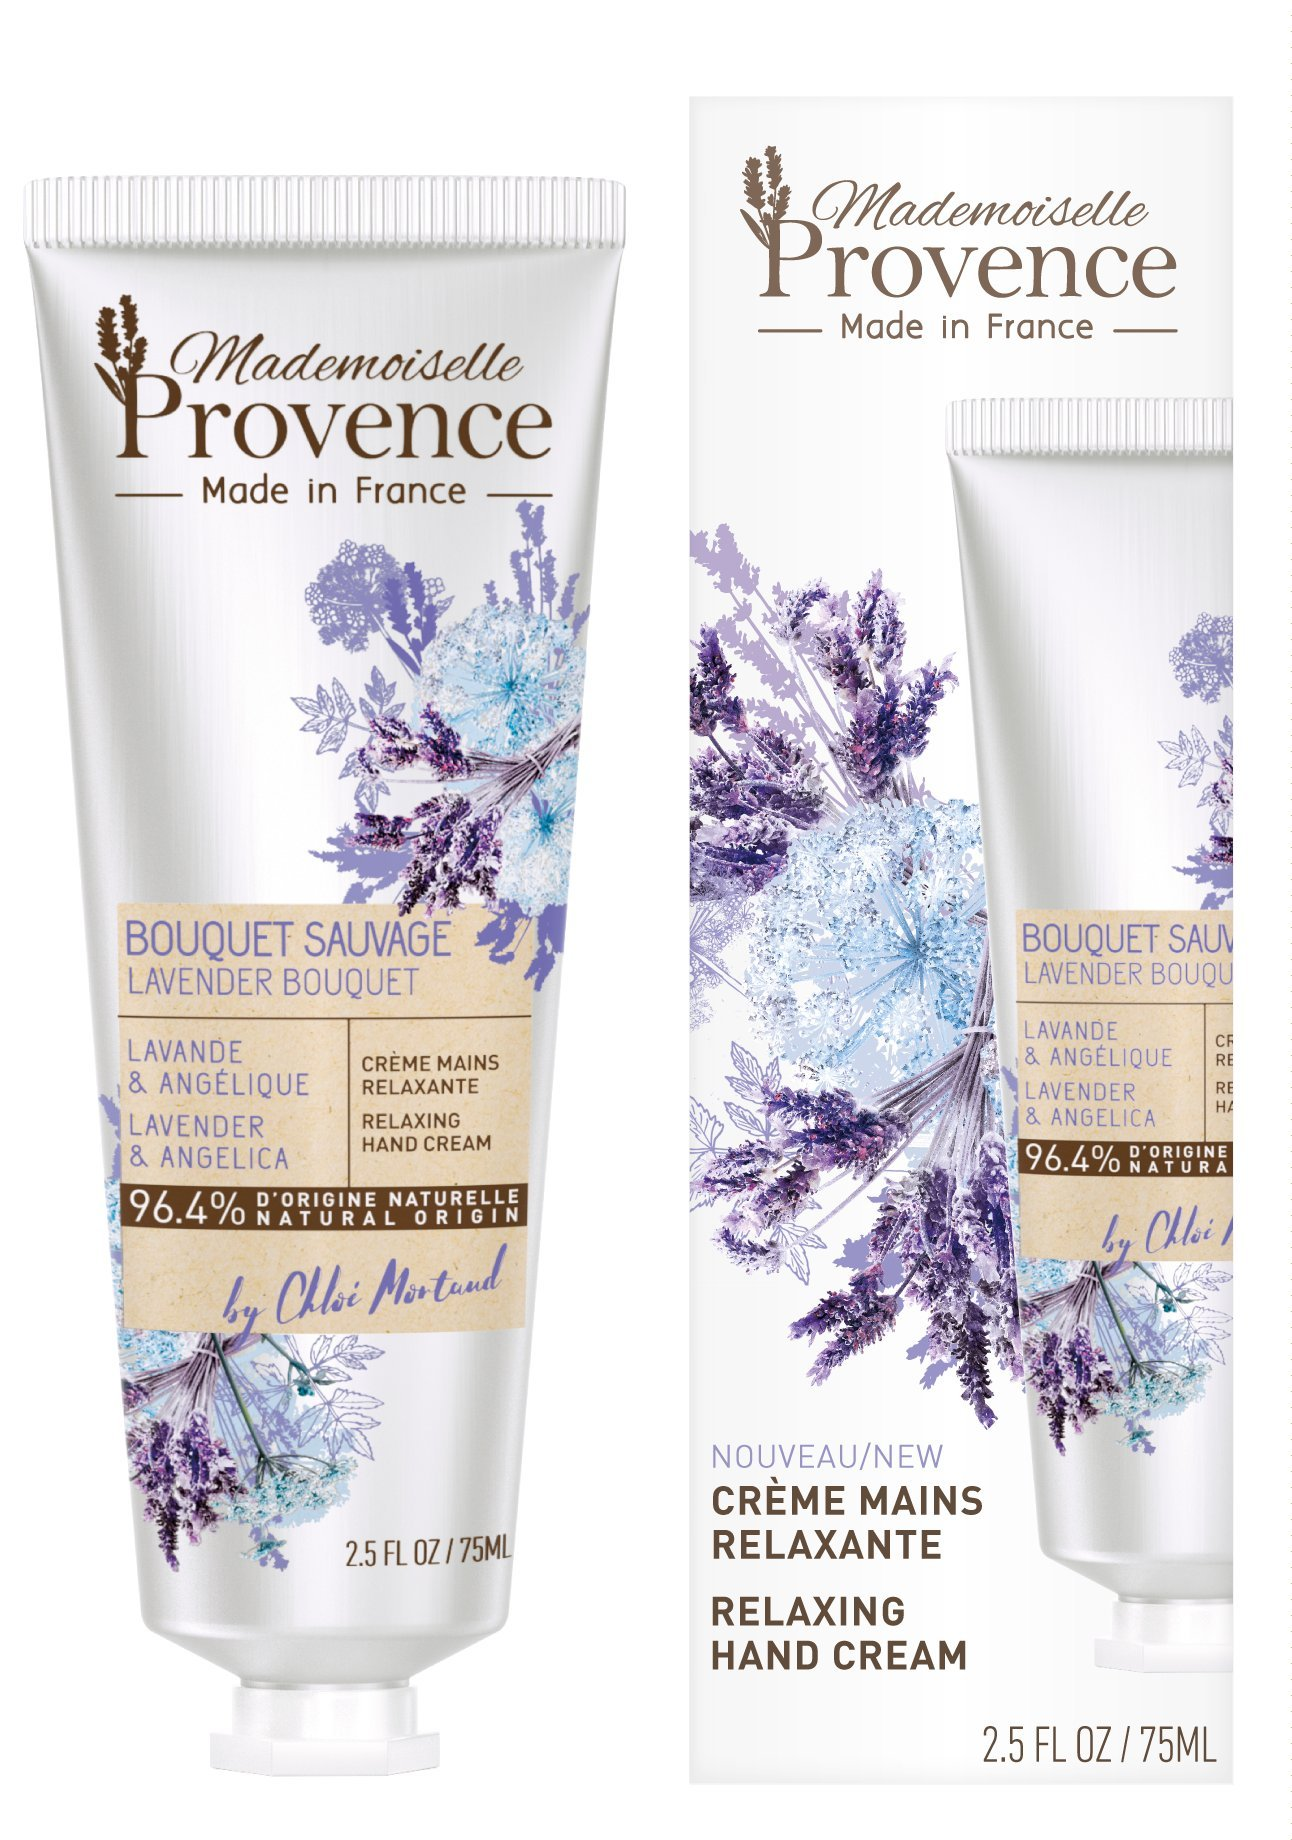 Natural Lavender Hand Cream Moisturizer - Mademoiselle Provence - Non Greasy, Soft & Relaxing Lotion - Shea Butter & Angelica extracts -100% Made in France - 2.5 Fl Oz